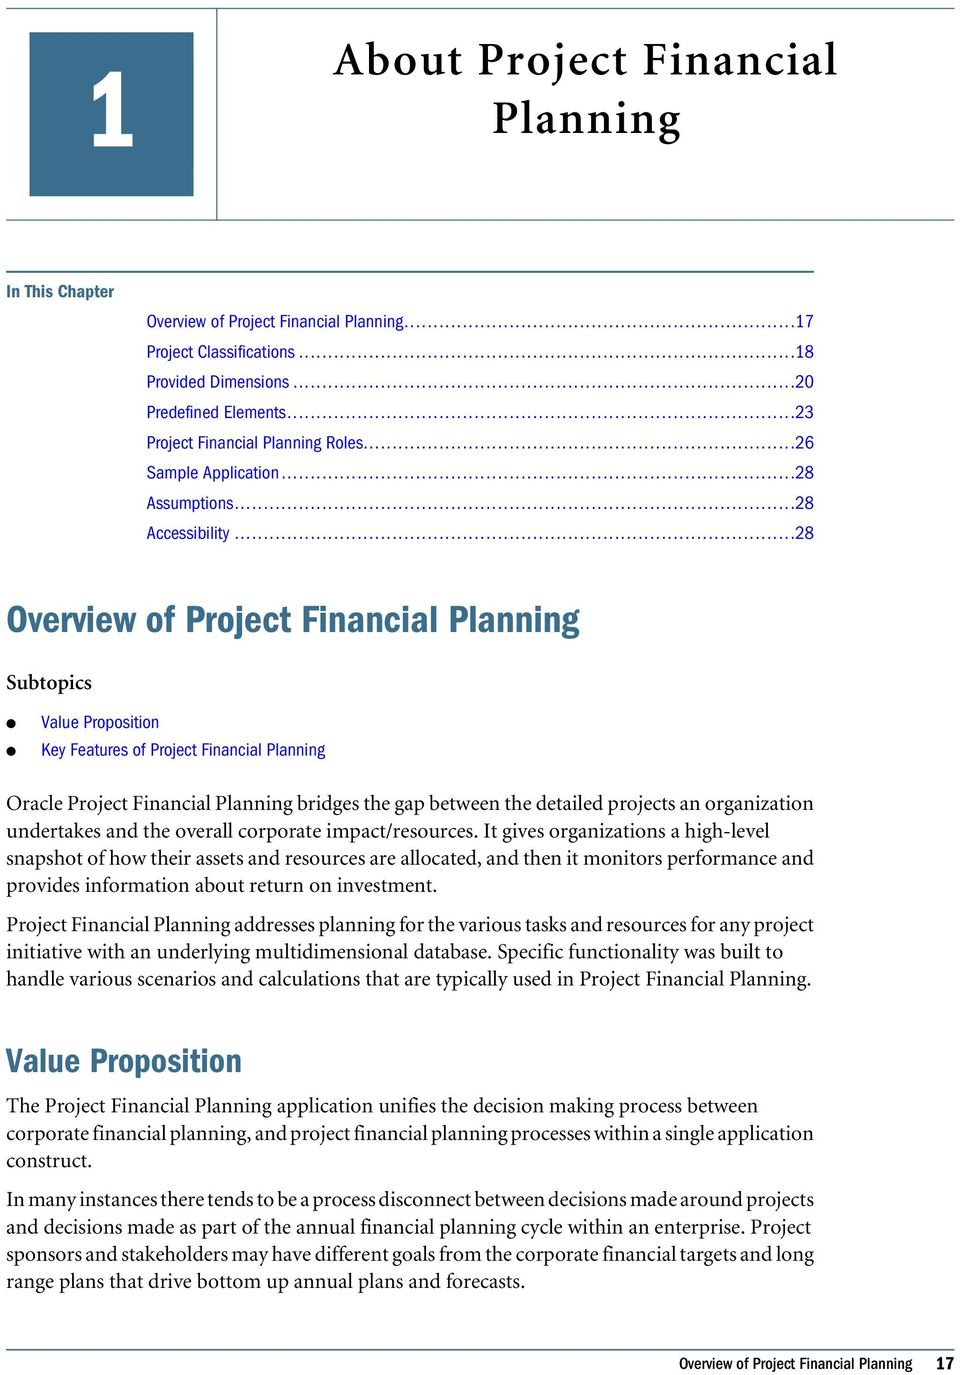 ..28 Overview of Project Financia Panning Subtopics Vaue Proposition Key Features of Project Financia Panning Orace Project Financia Panning bridges the gap between the detaied projects an